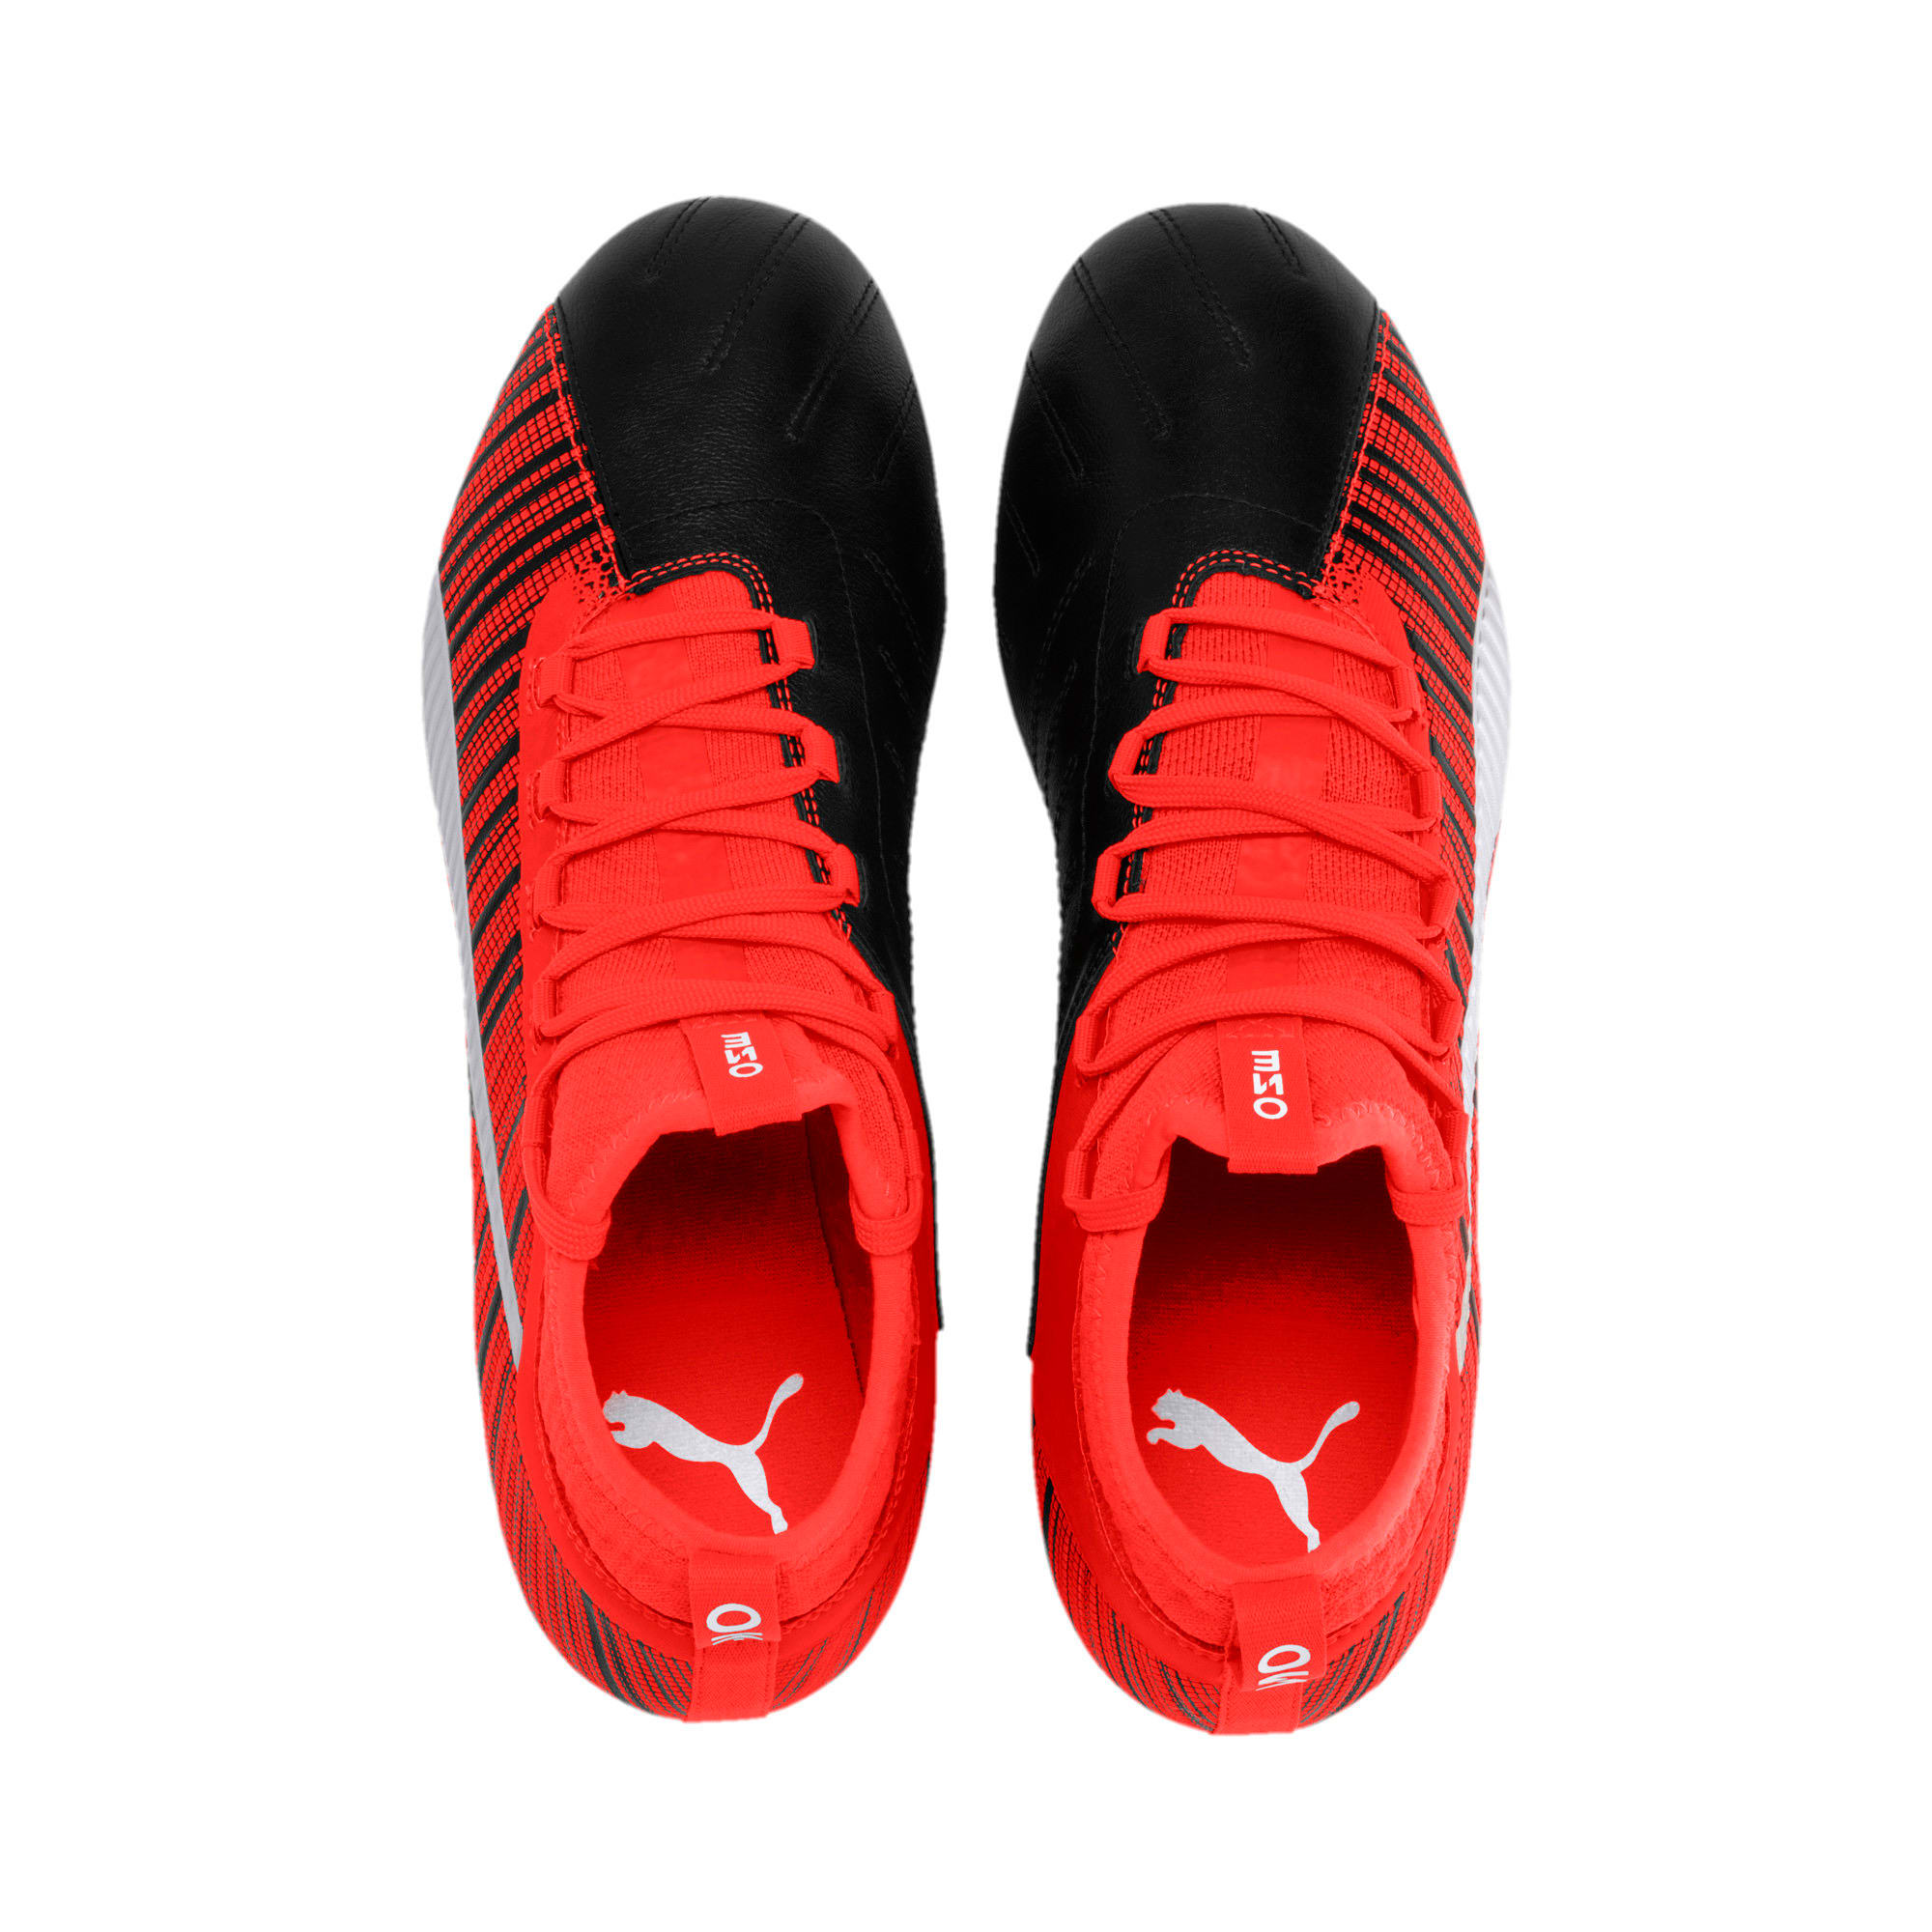 Thumbnail 7 of PUMA ONE 5.3 FG/AG Men's Football Boots, Black-Nrgy Red-Aged Silver, medium